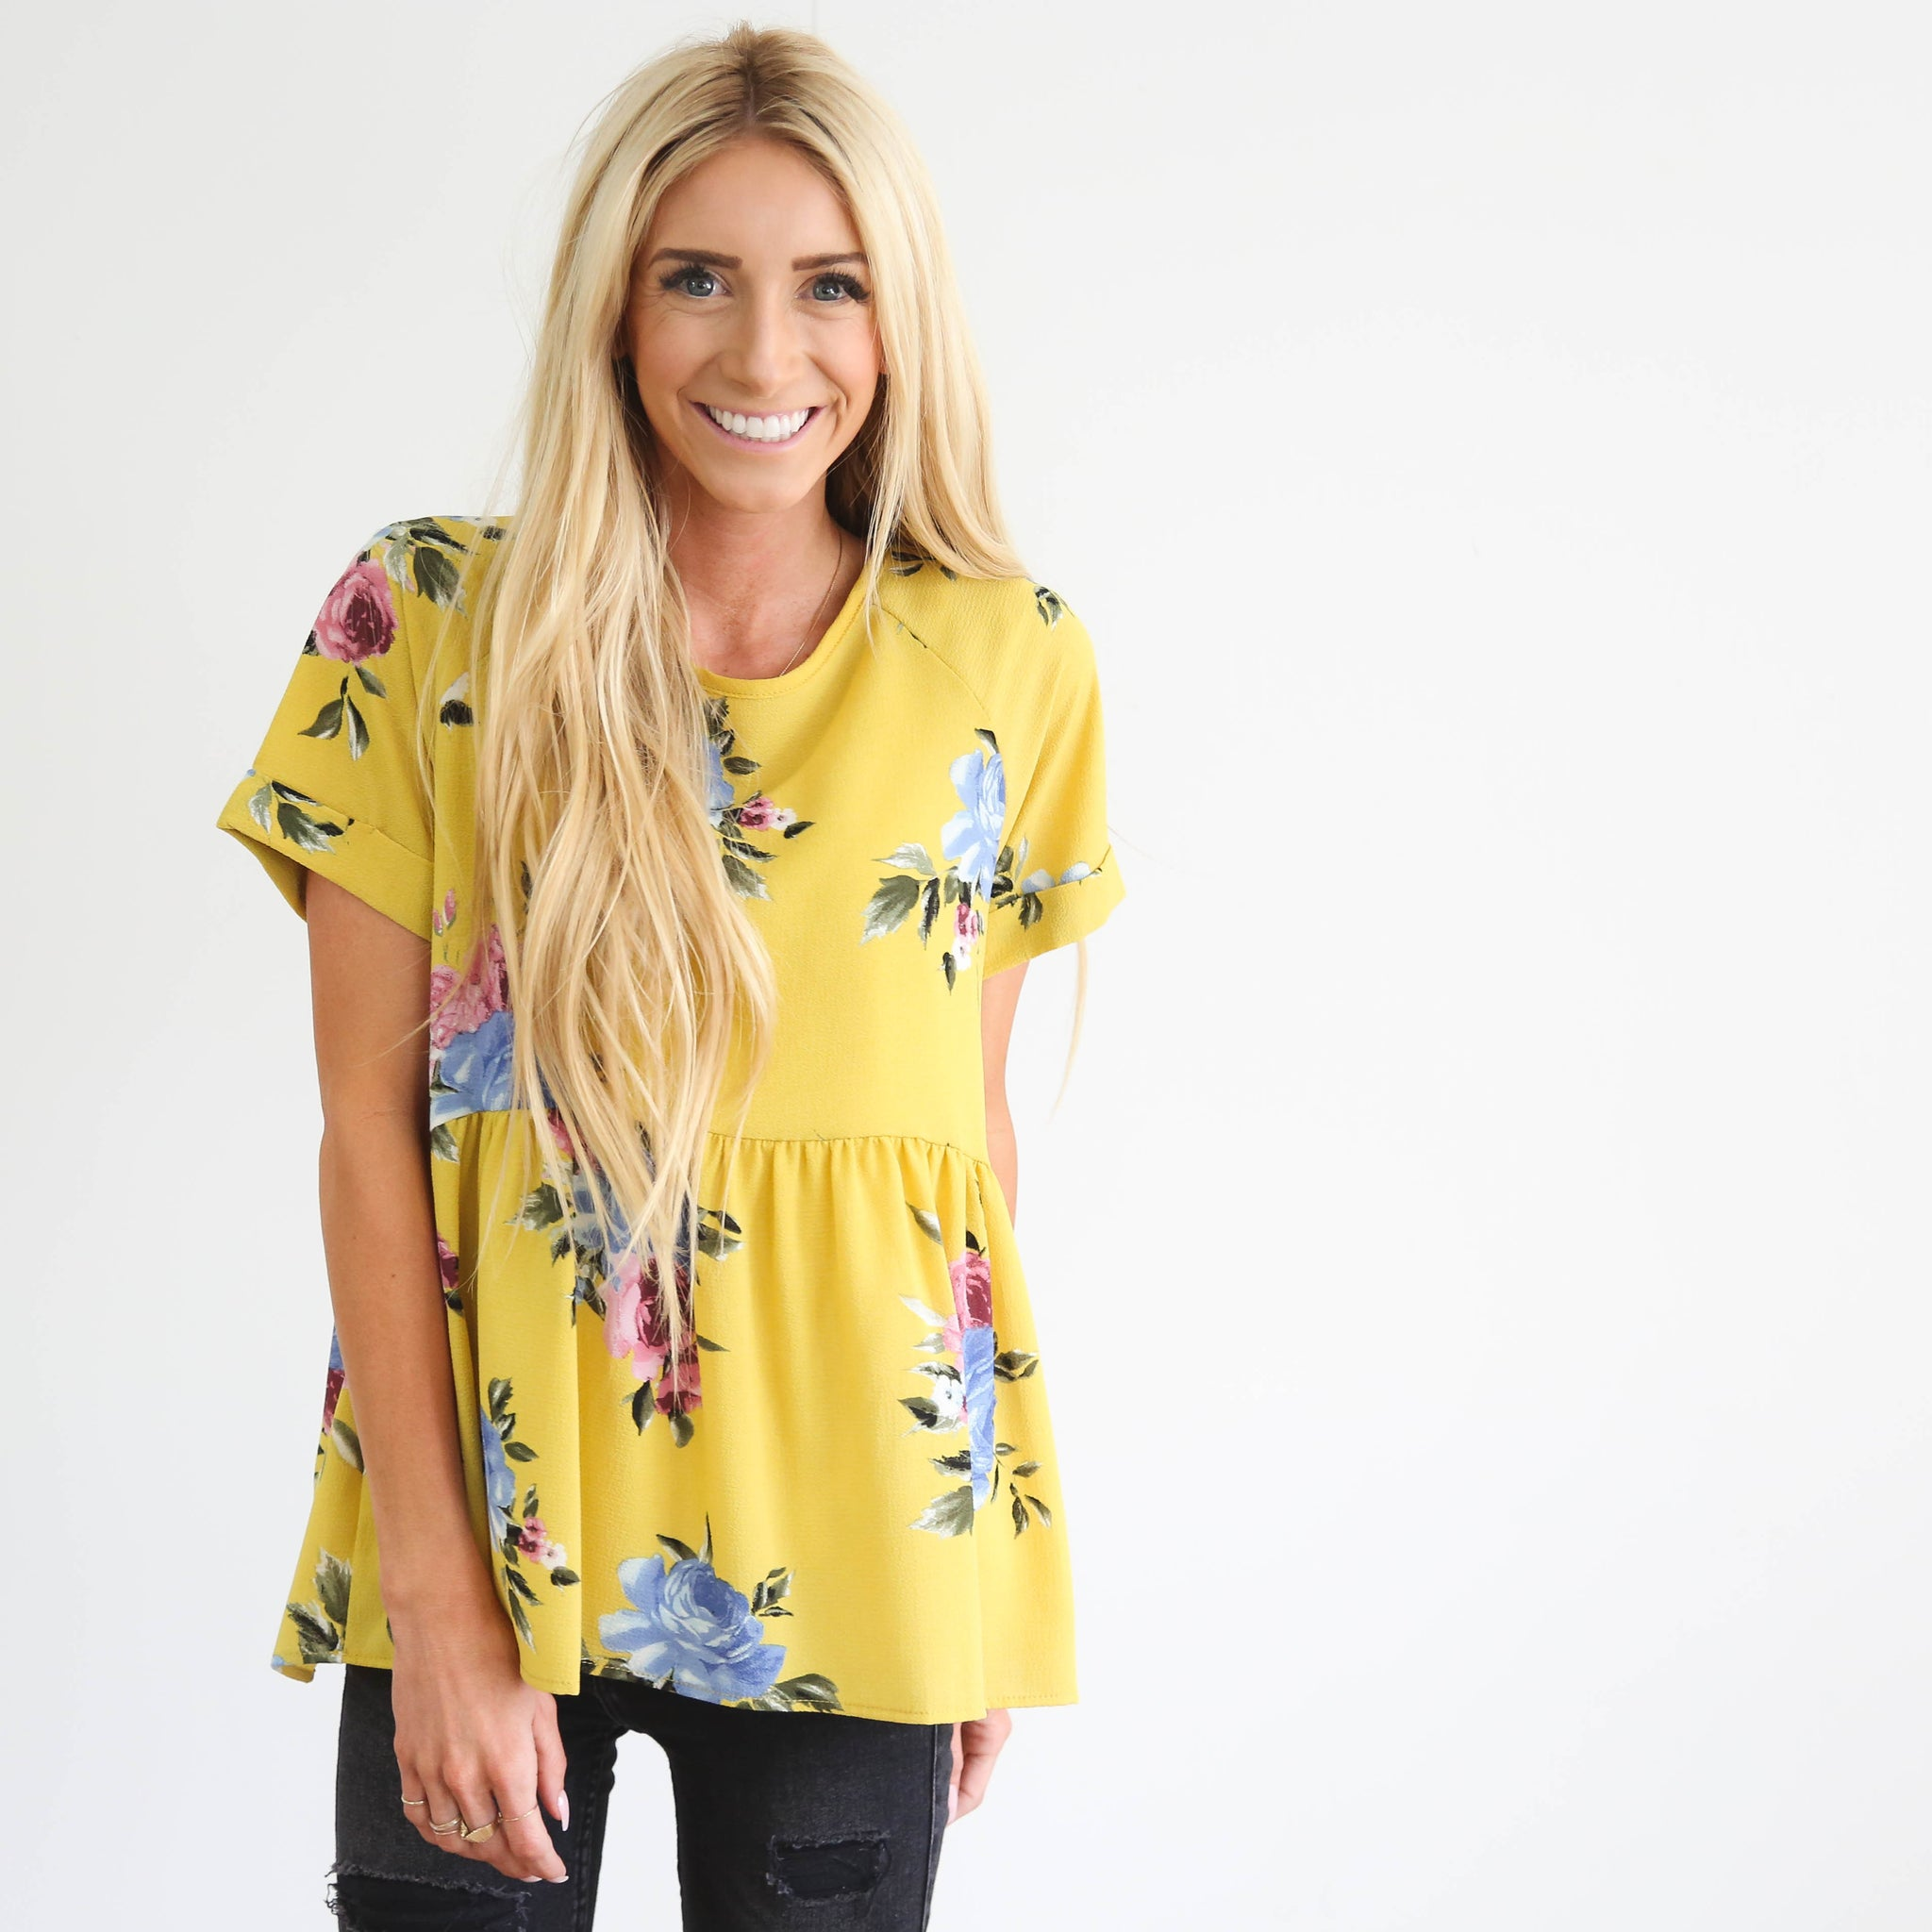 Caprea Top in Yellow